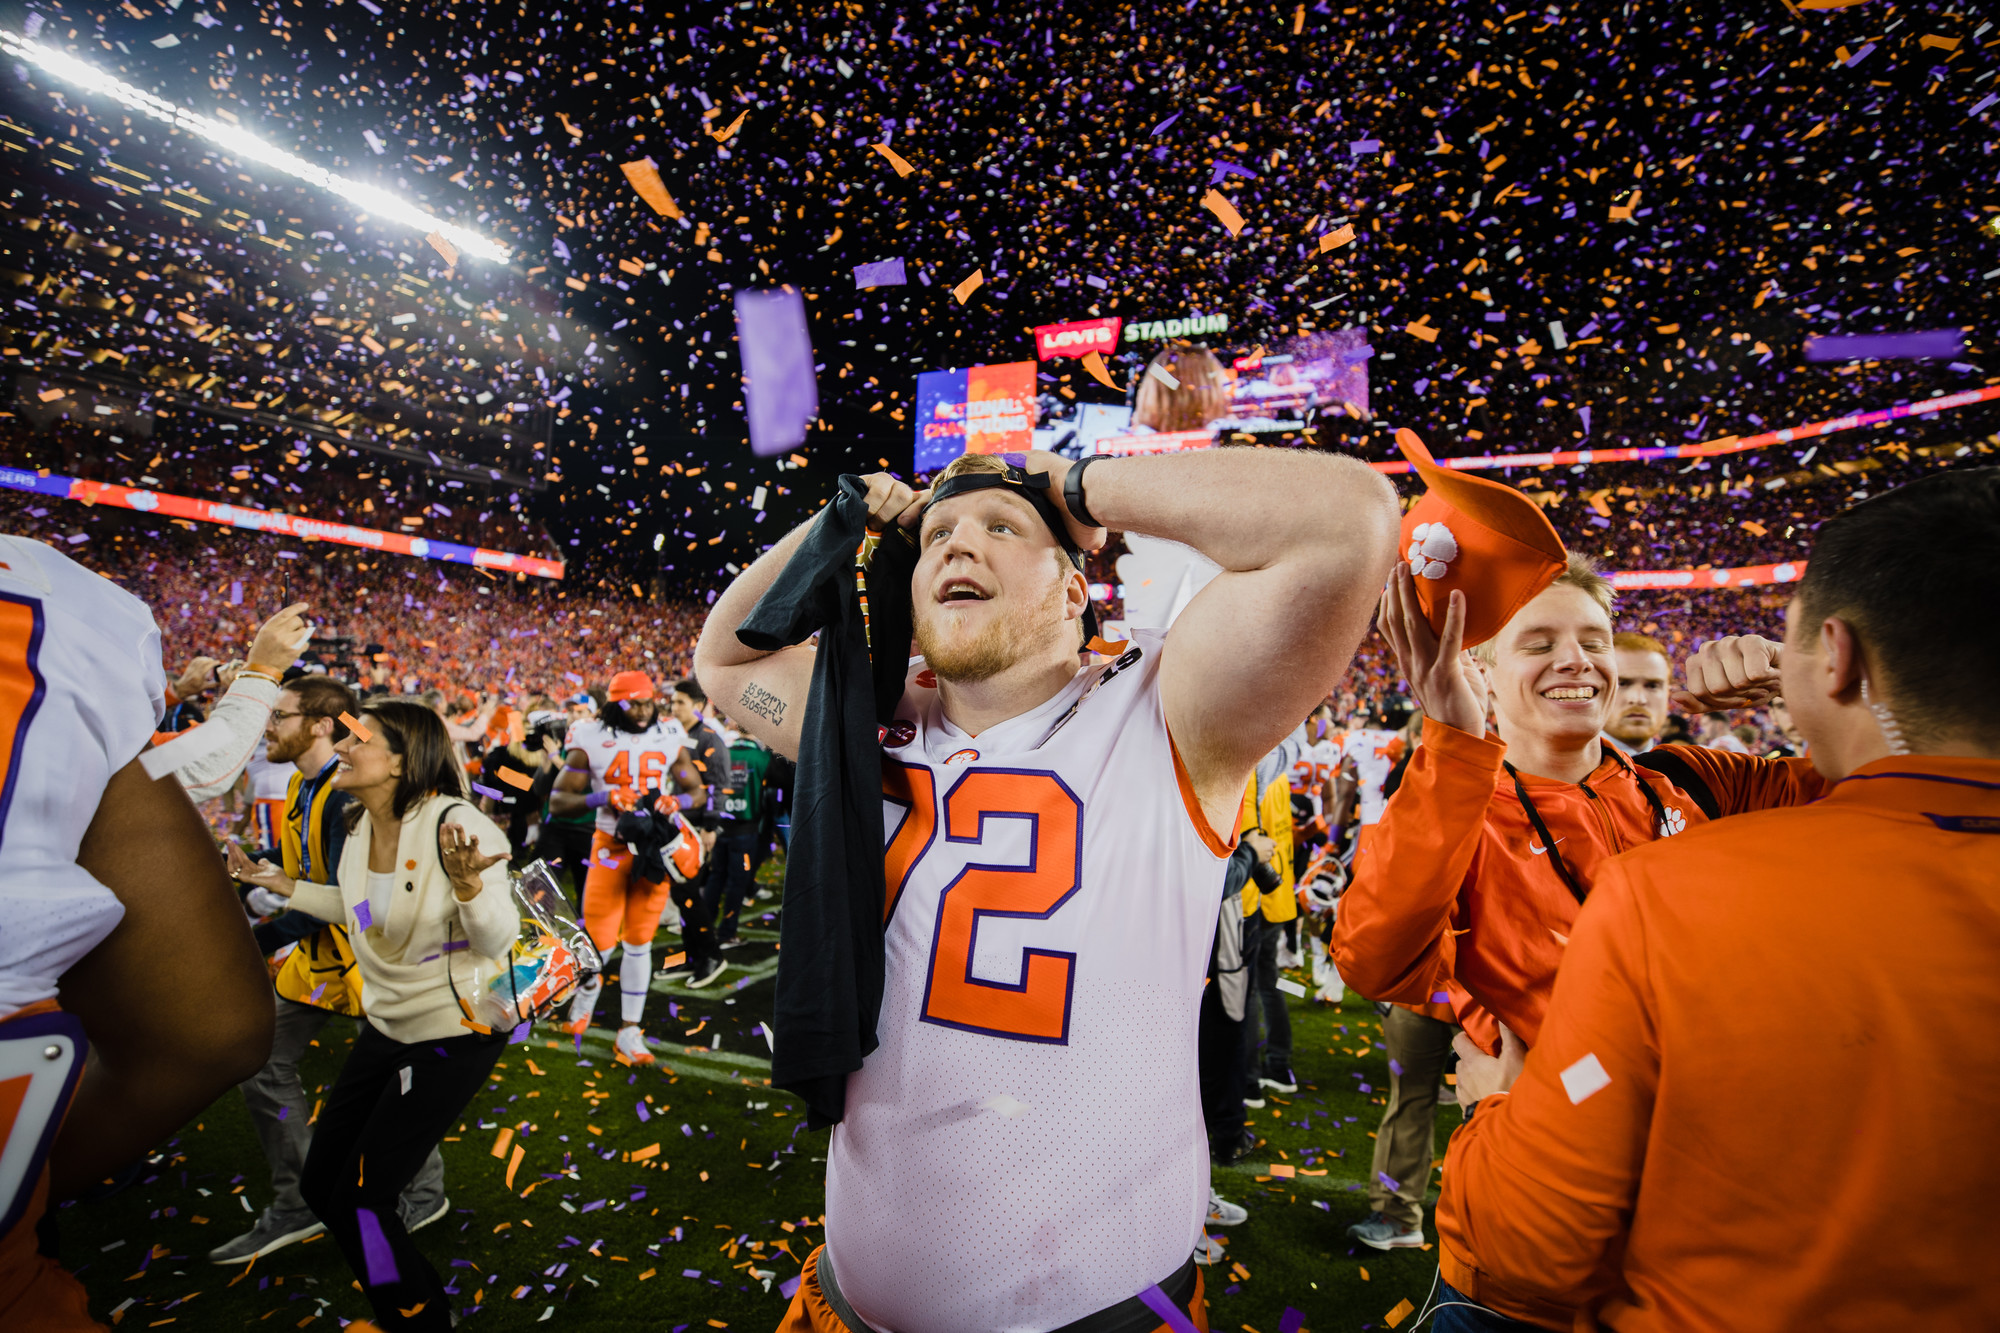 Clemson offensive tackle Blake Vinson celebrates at Levi's Stadium in Santa Clara, California, on Monday, Jan. 7 after routing Alabama 44-16 to win the 2019 CFP National Championship.